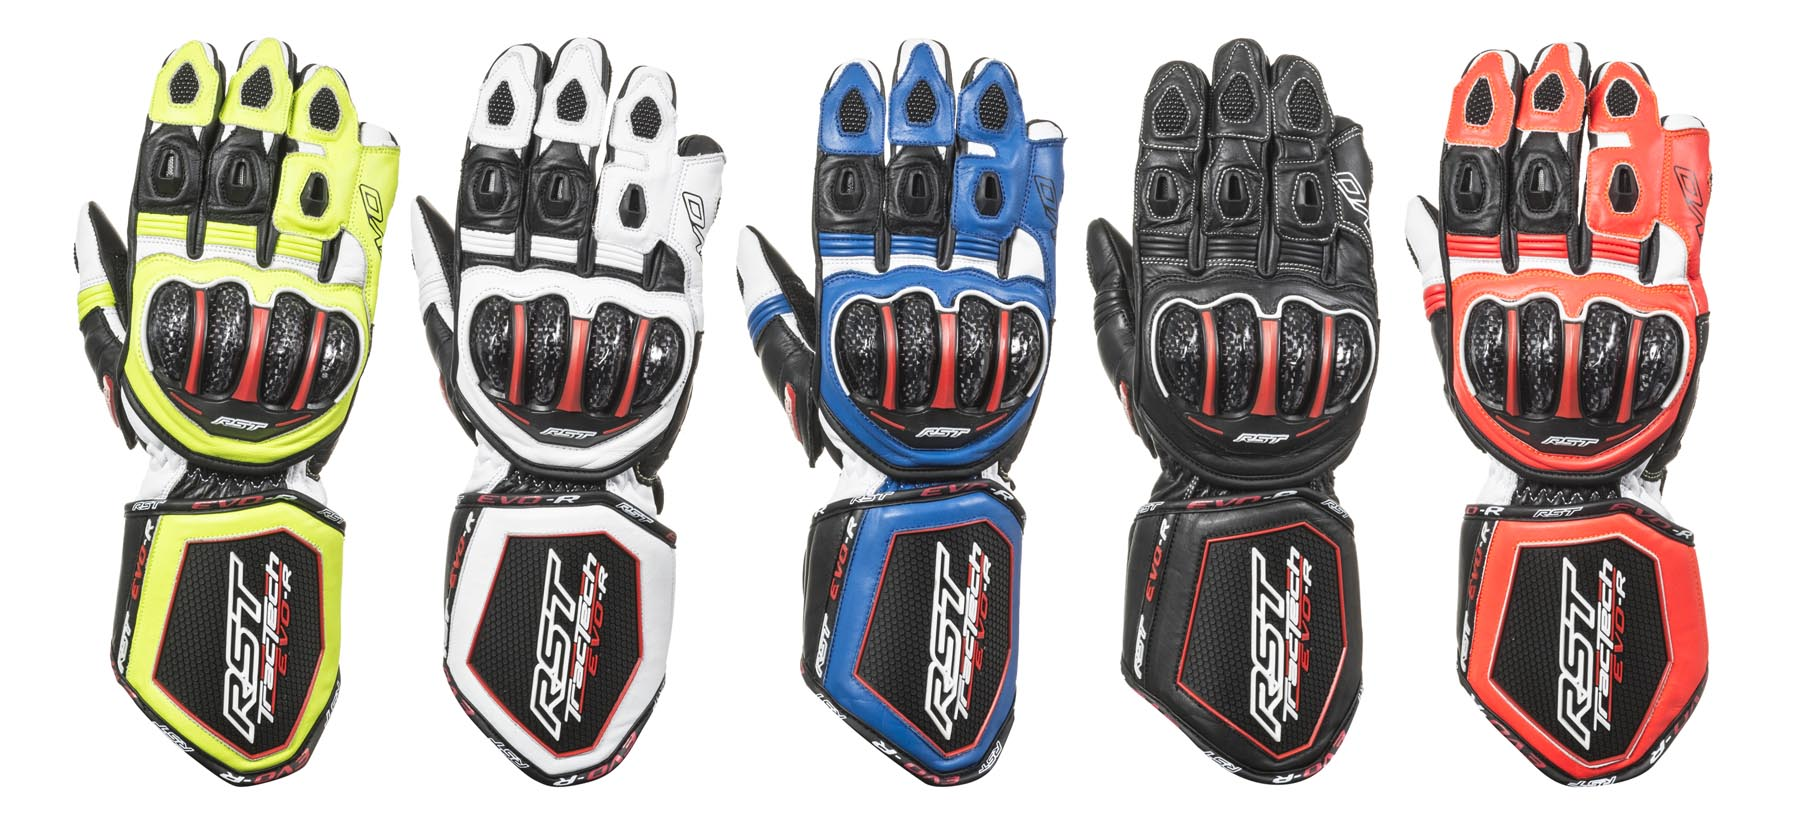 TRACTECH EVO R COLOUR WAY GLOVES